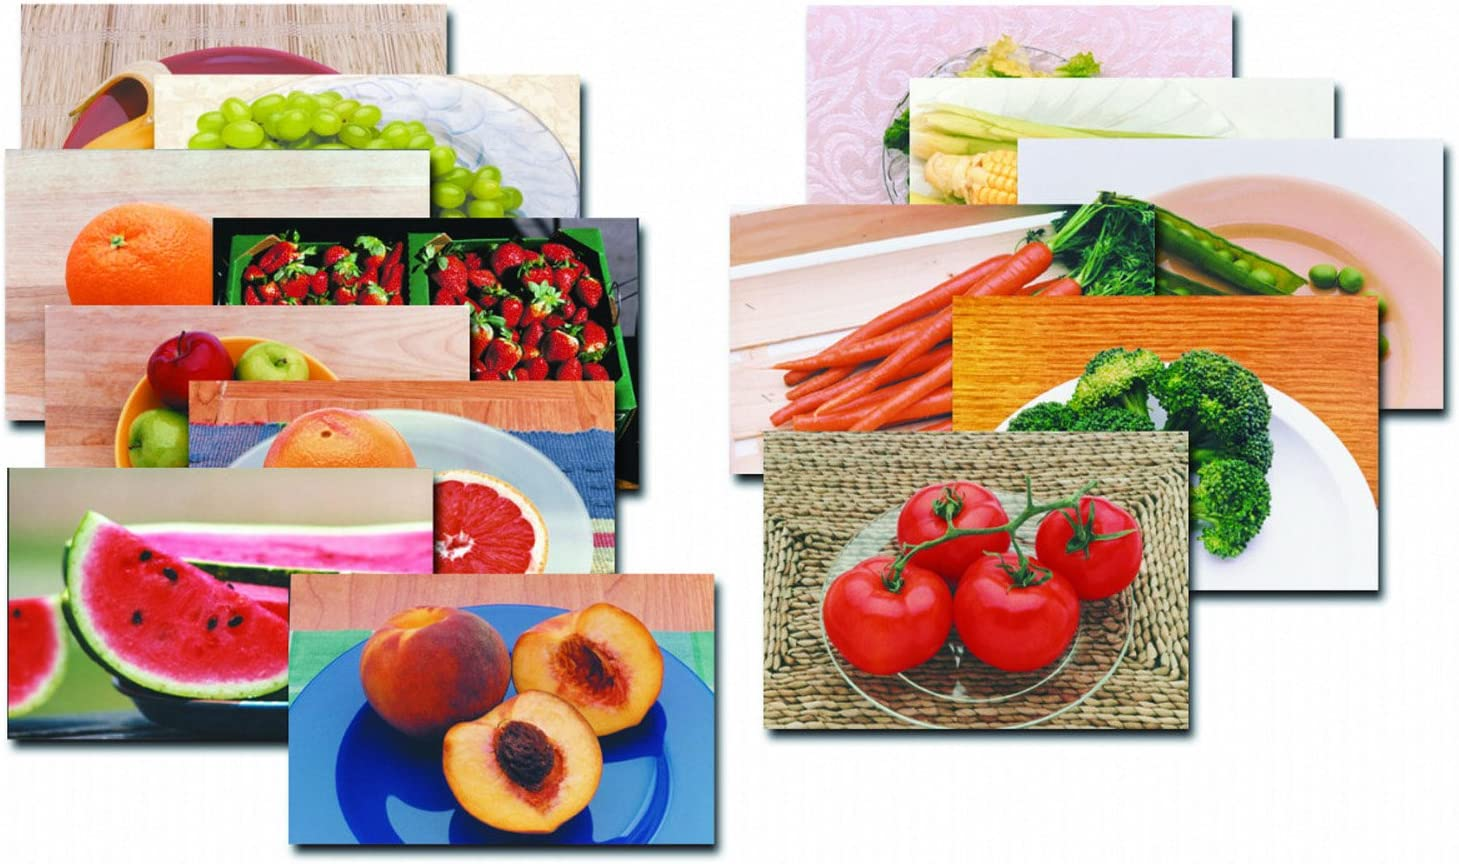 Fruits & Vegetables Posters Real Photo Classroom Decorations for Preschool Bulletin Boards & Circle Time 10 Large Picture Cards, Size 14/Large